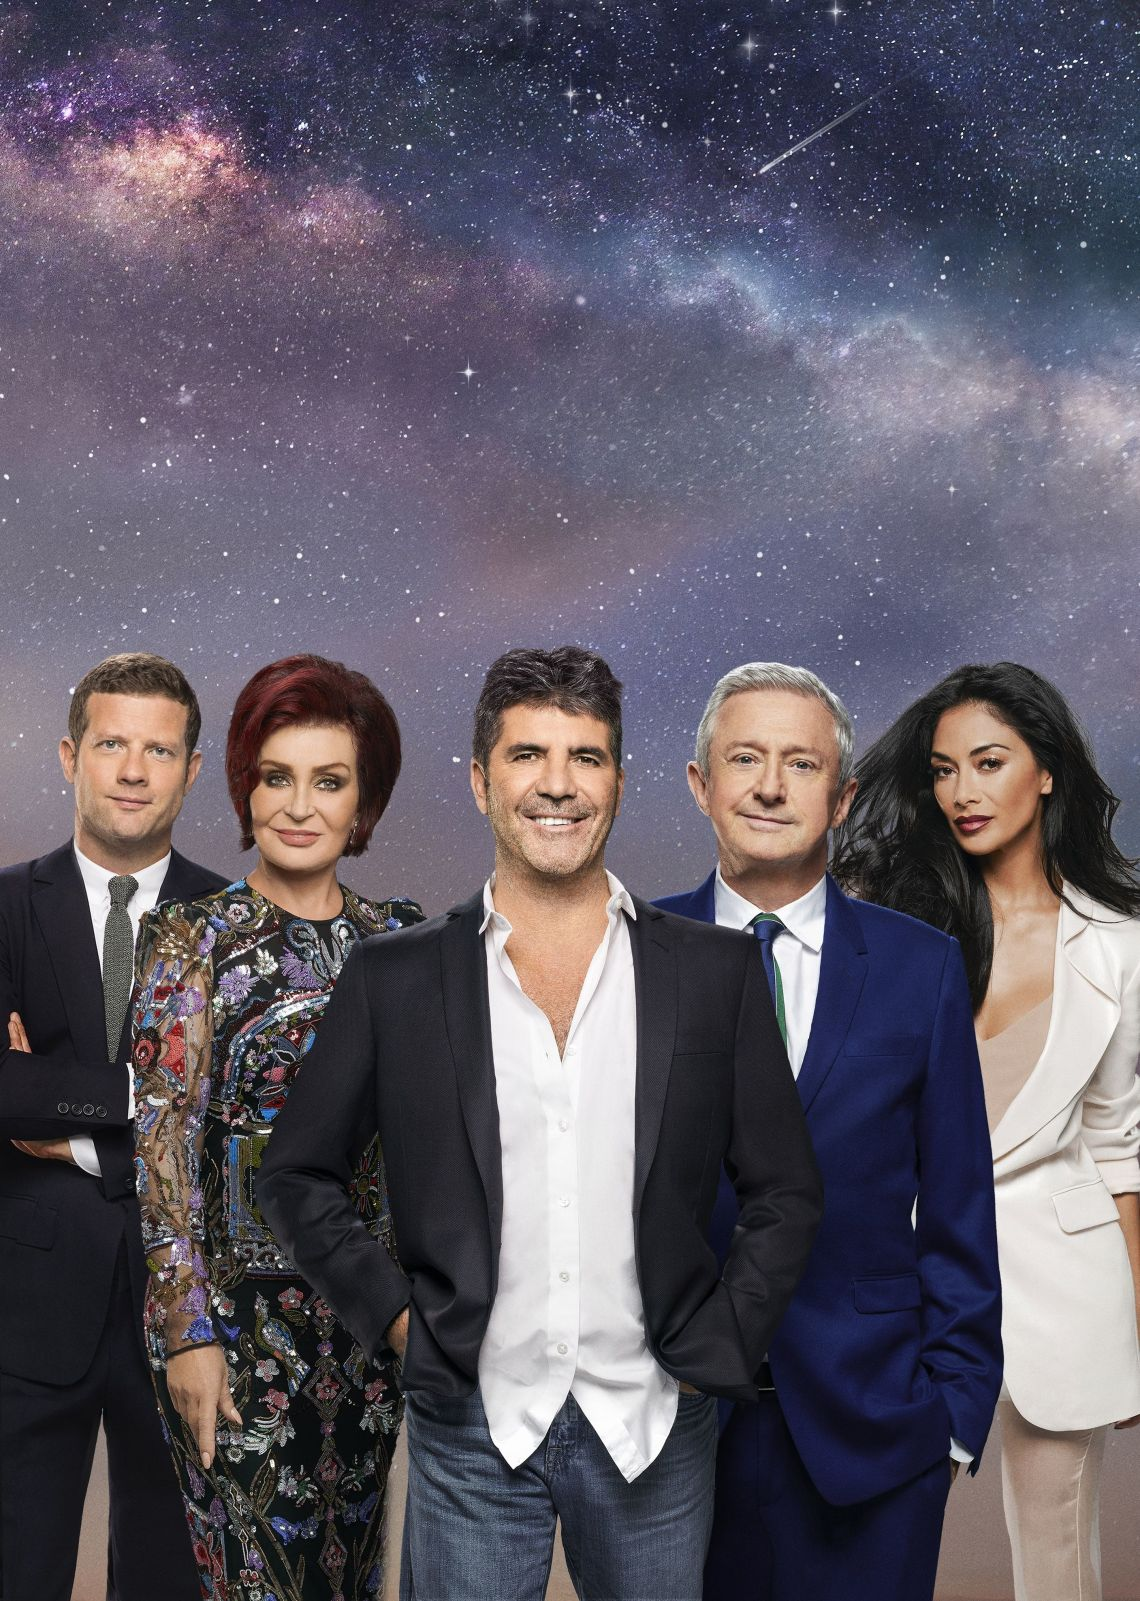 Sharon Osbourne insulted Simon Cowell and 'The X Factor'